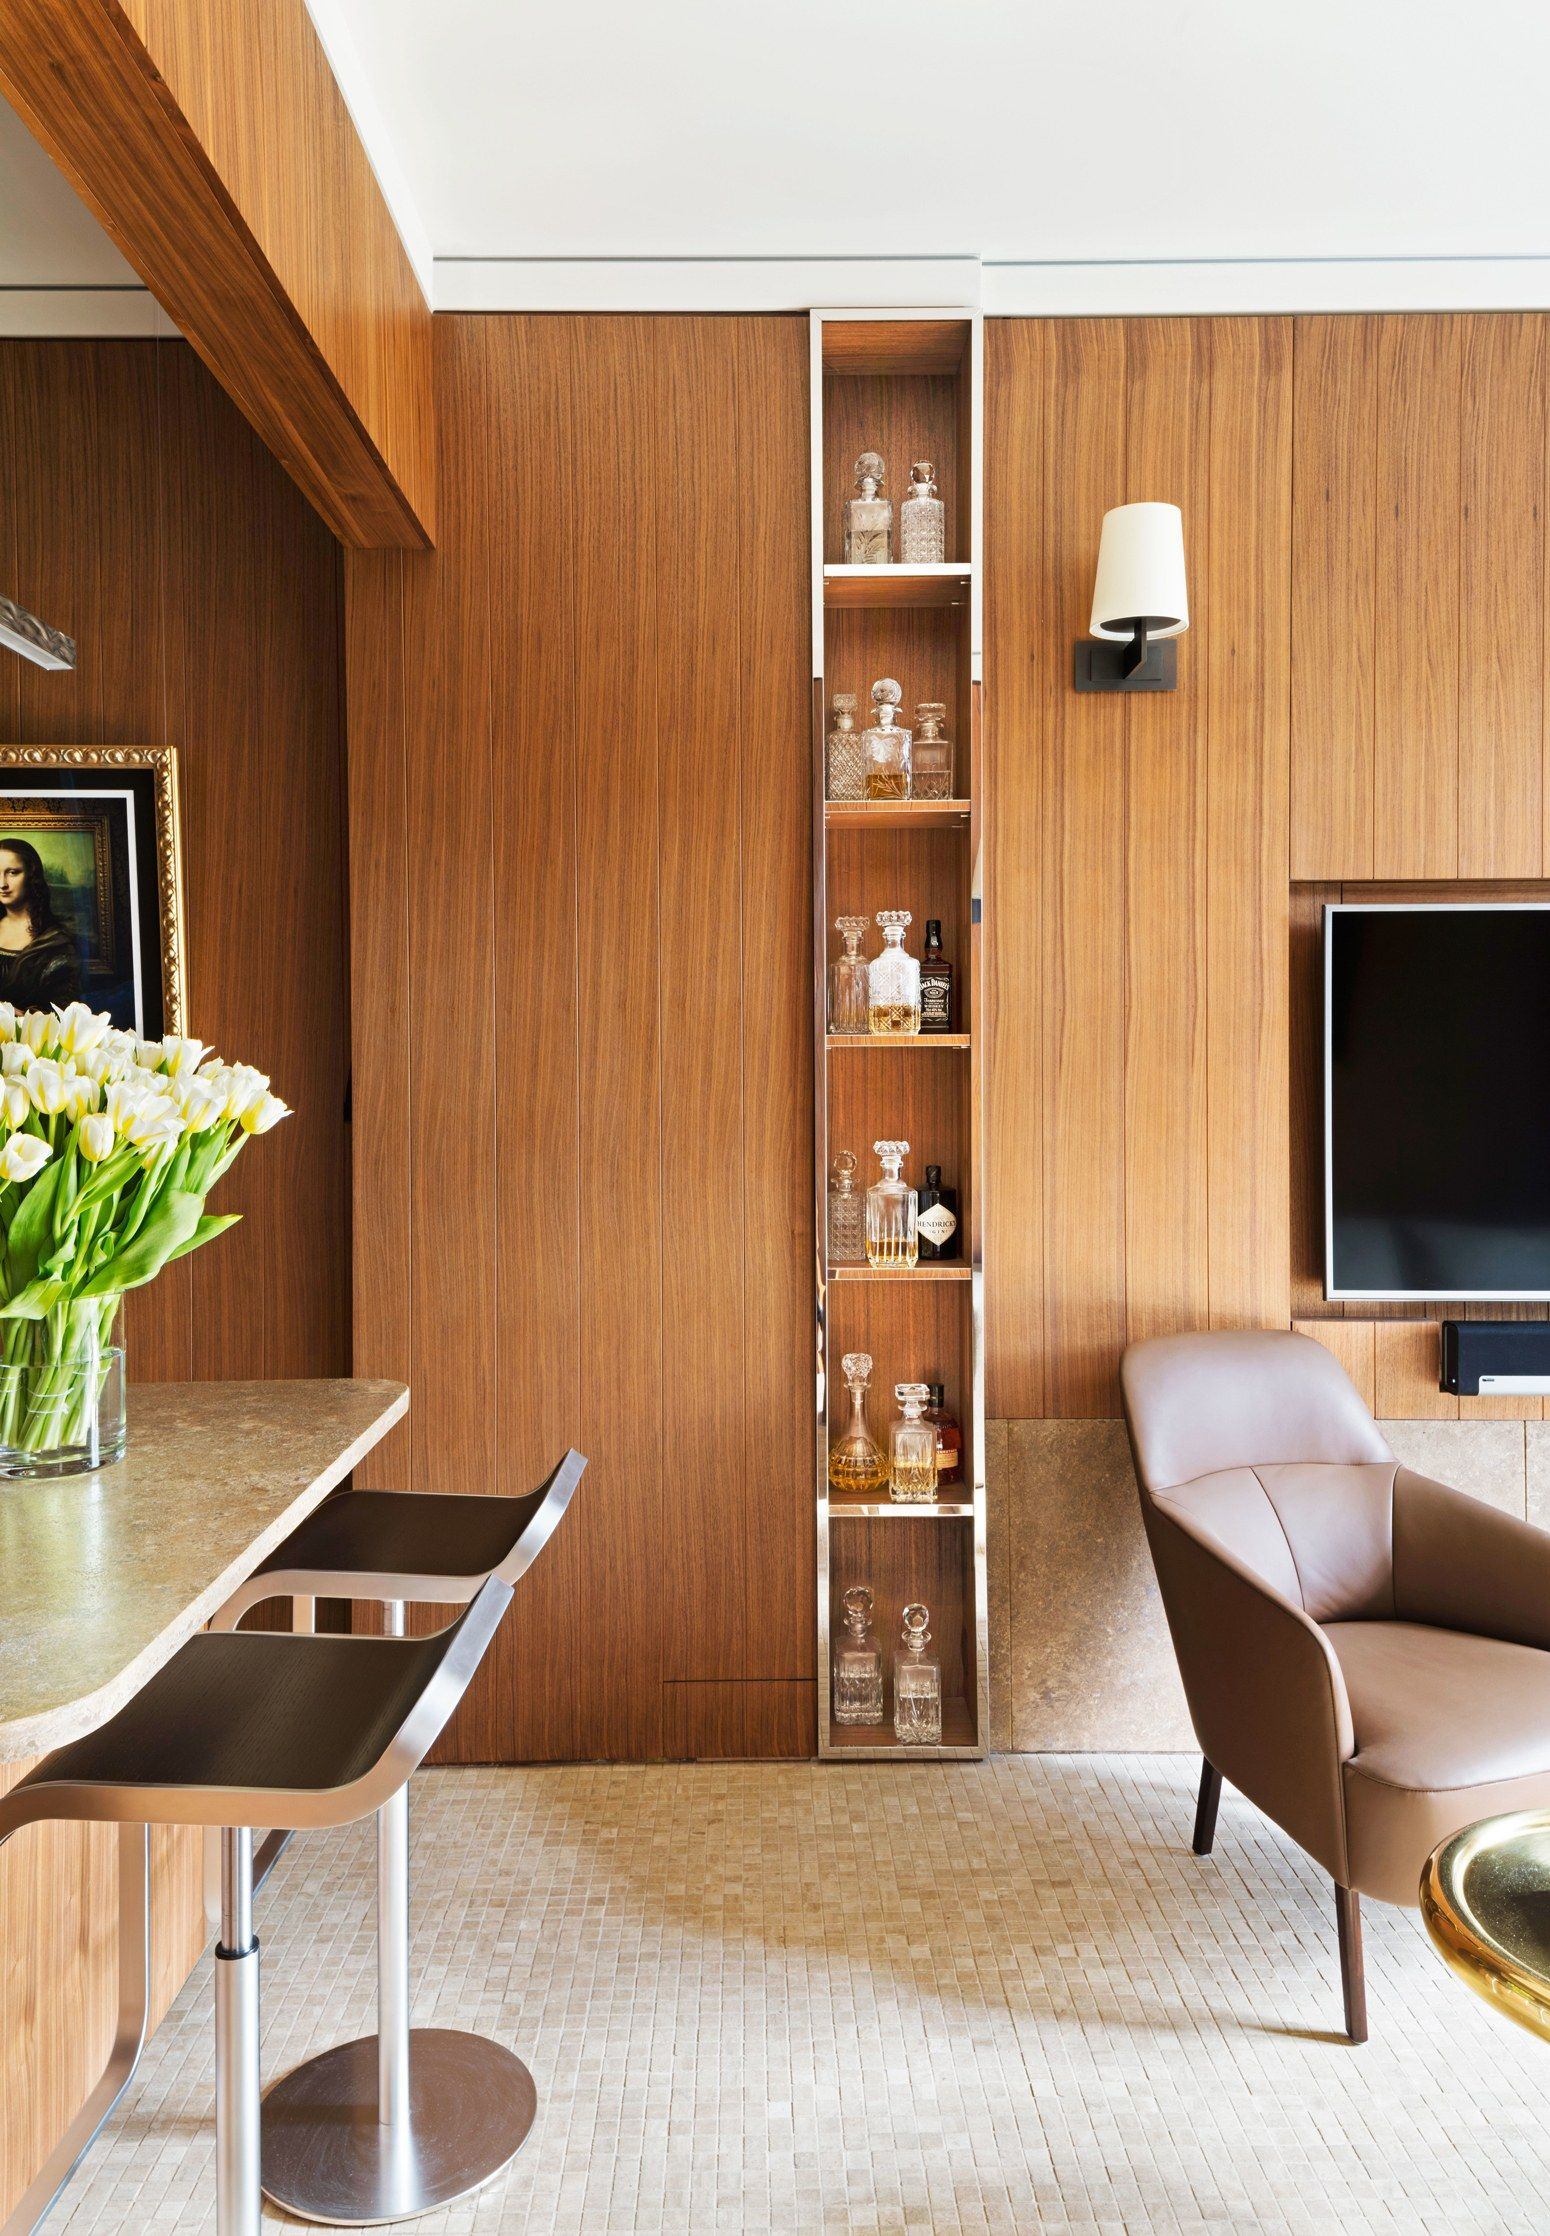 A Sleek Yet Cozy Small Space in London | Architectural digest ...